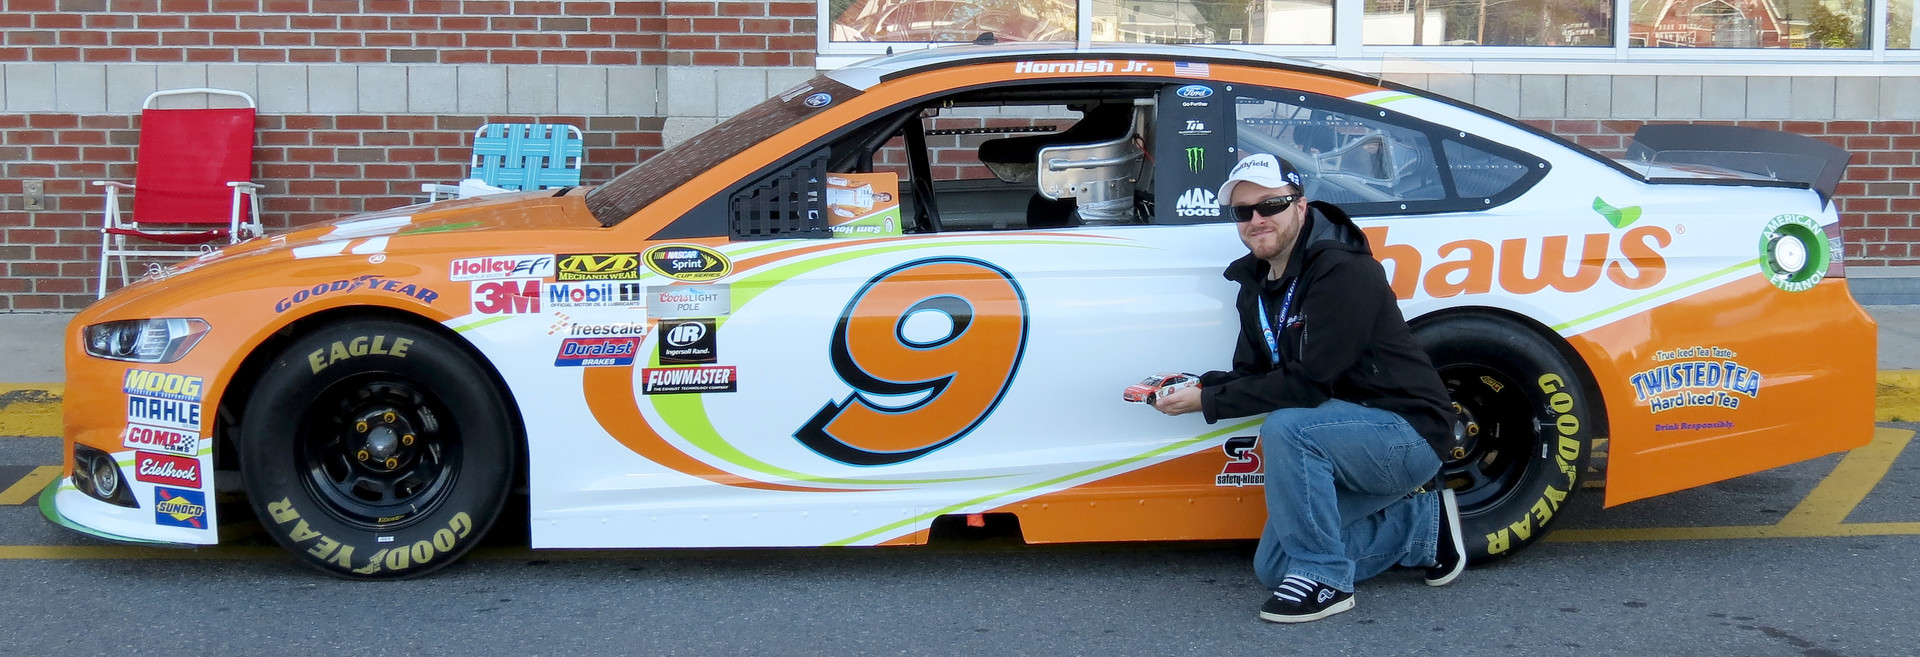 Posing with my custom #9 Shaw's Supermarkets diecast outside Shaw's of Concord, New Hampshire. September 26th, 2015.